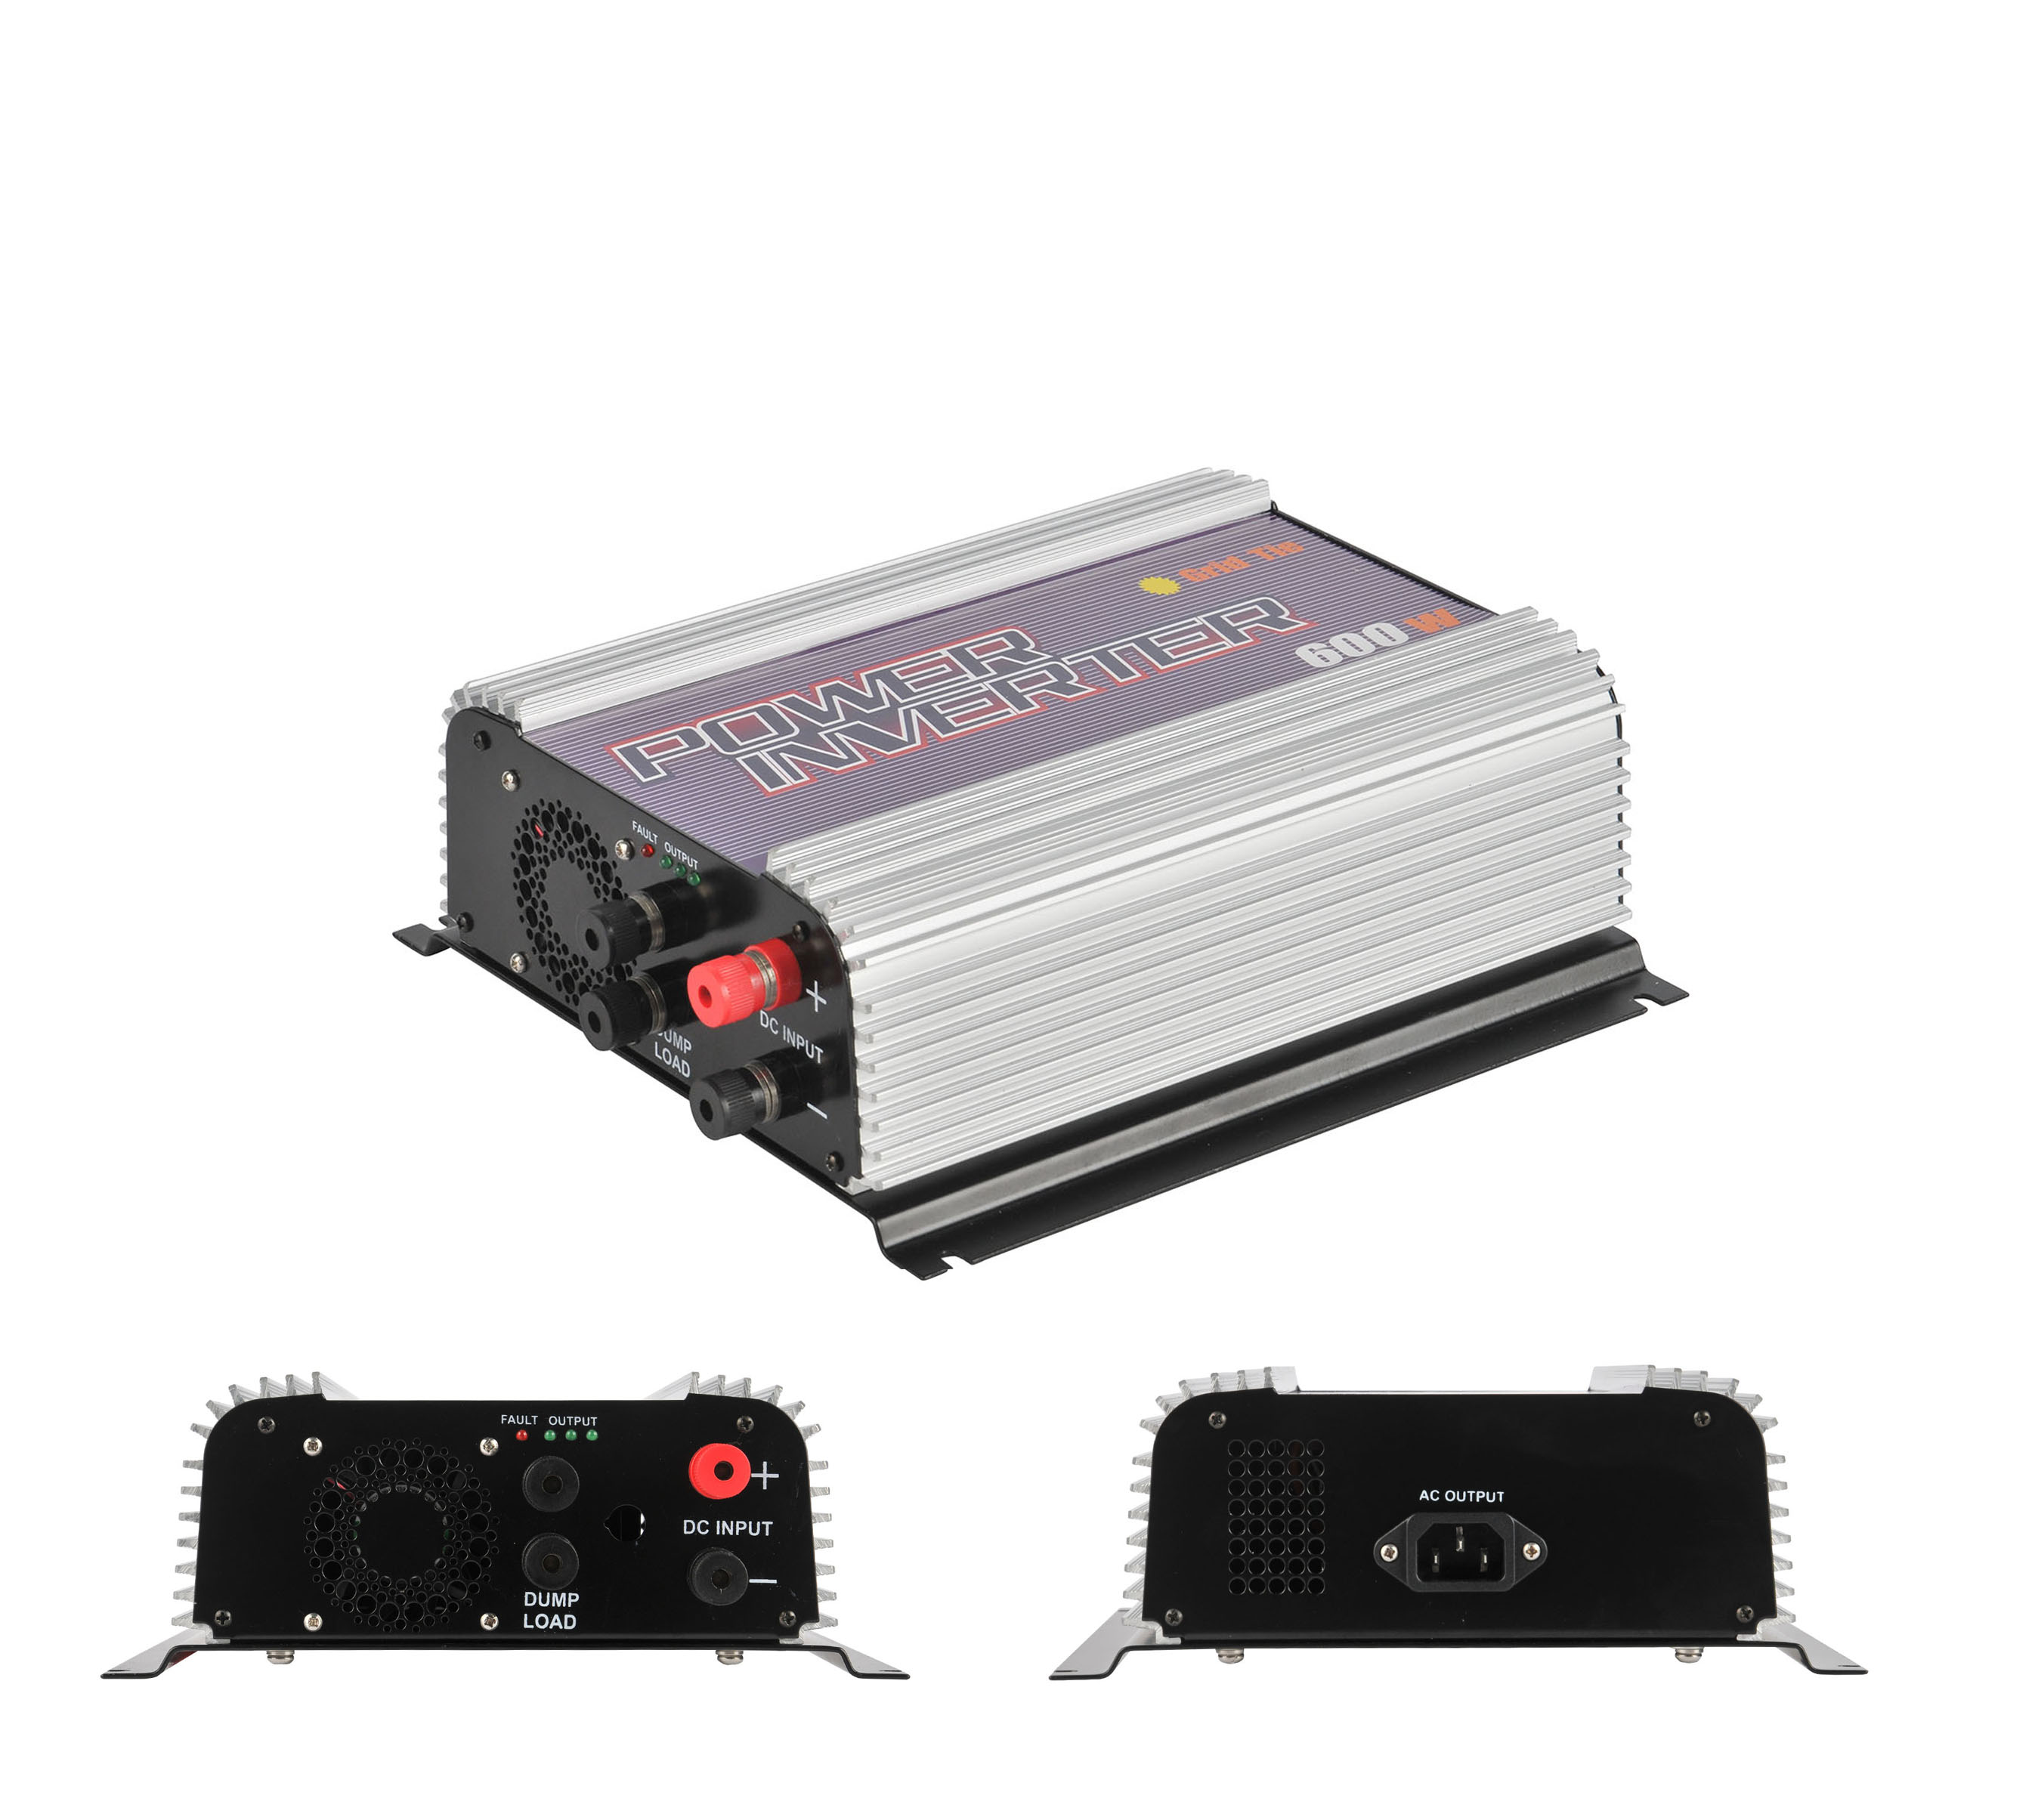 SUN-600G-WDL Wind power grid tie inverter/power inverter 600w